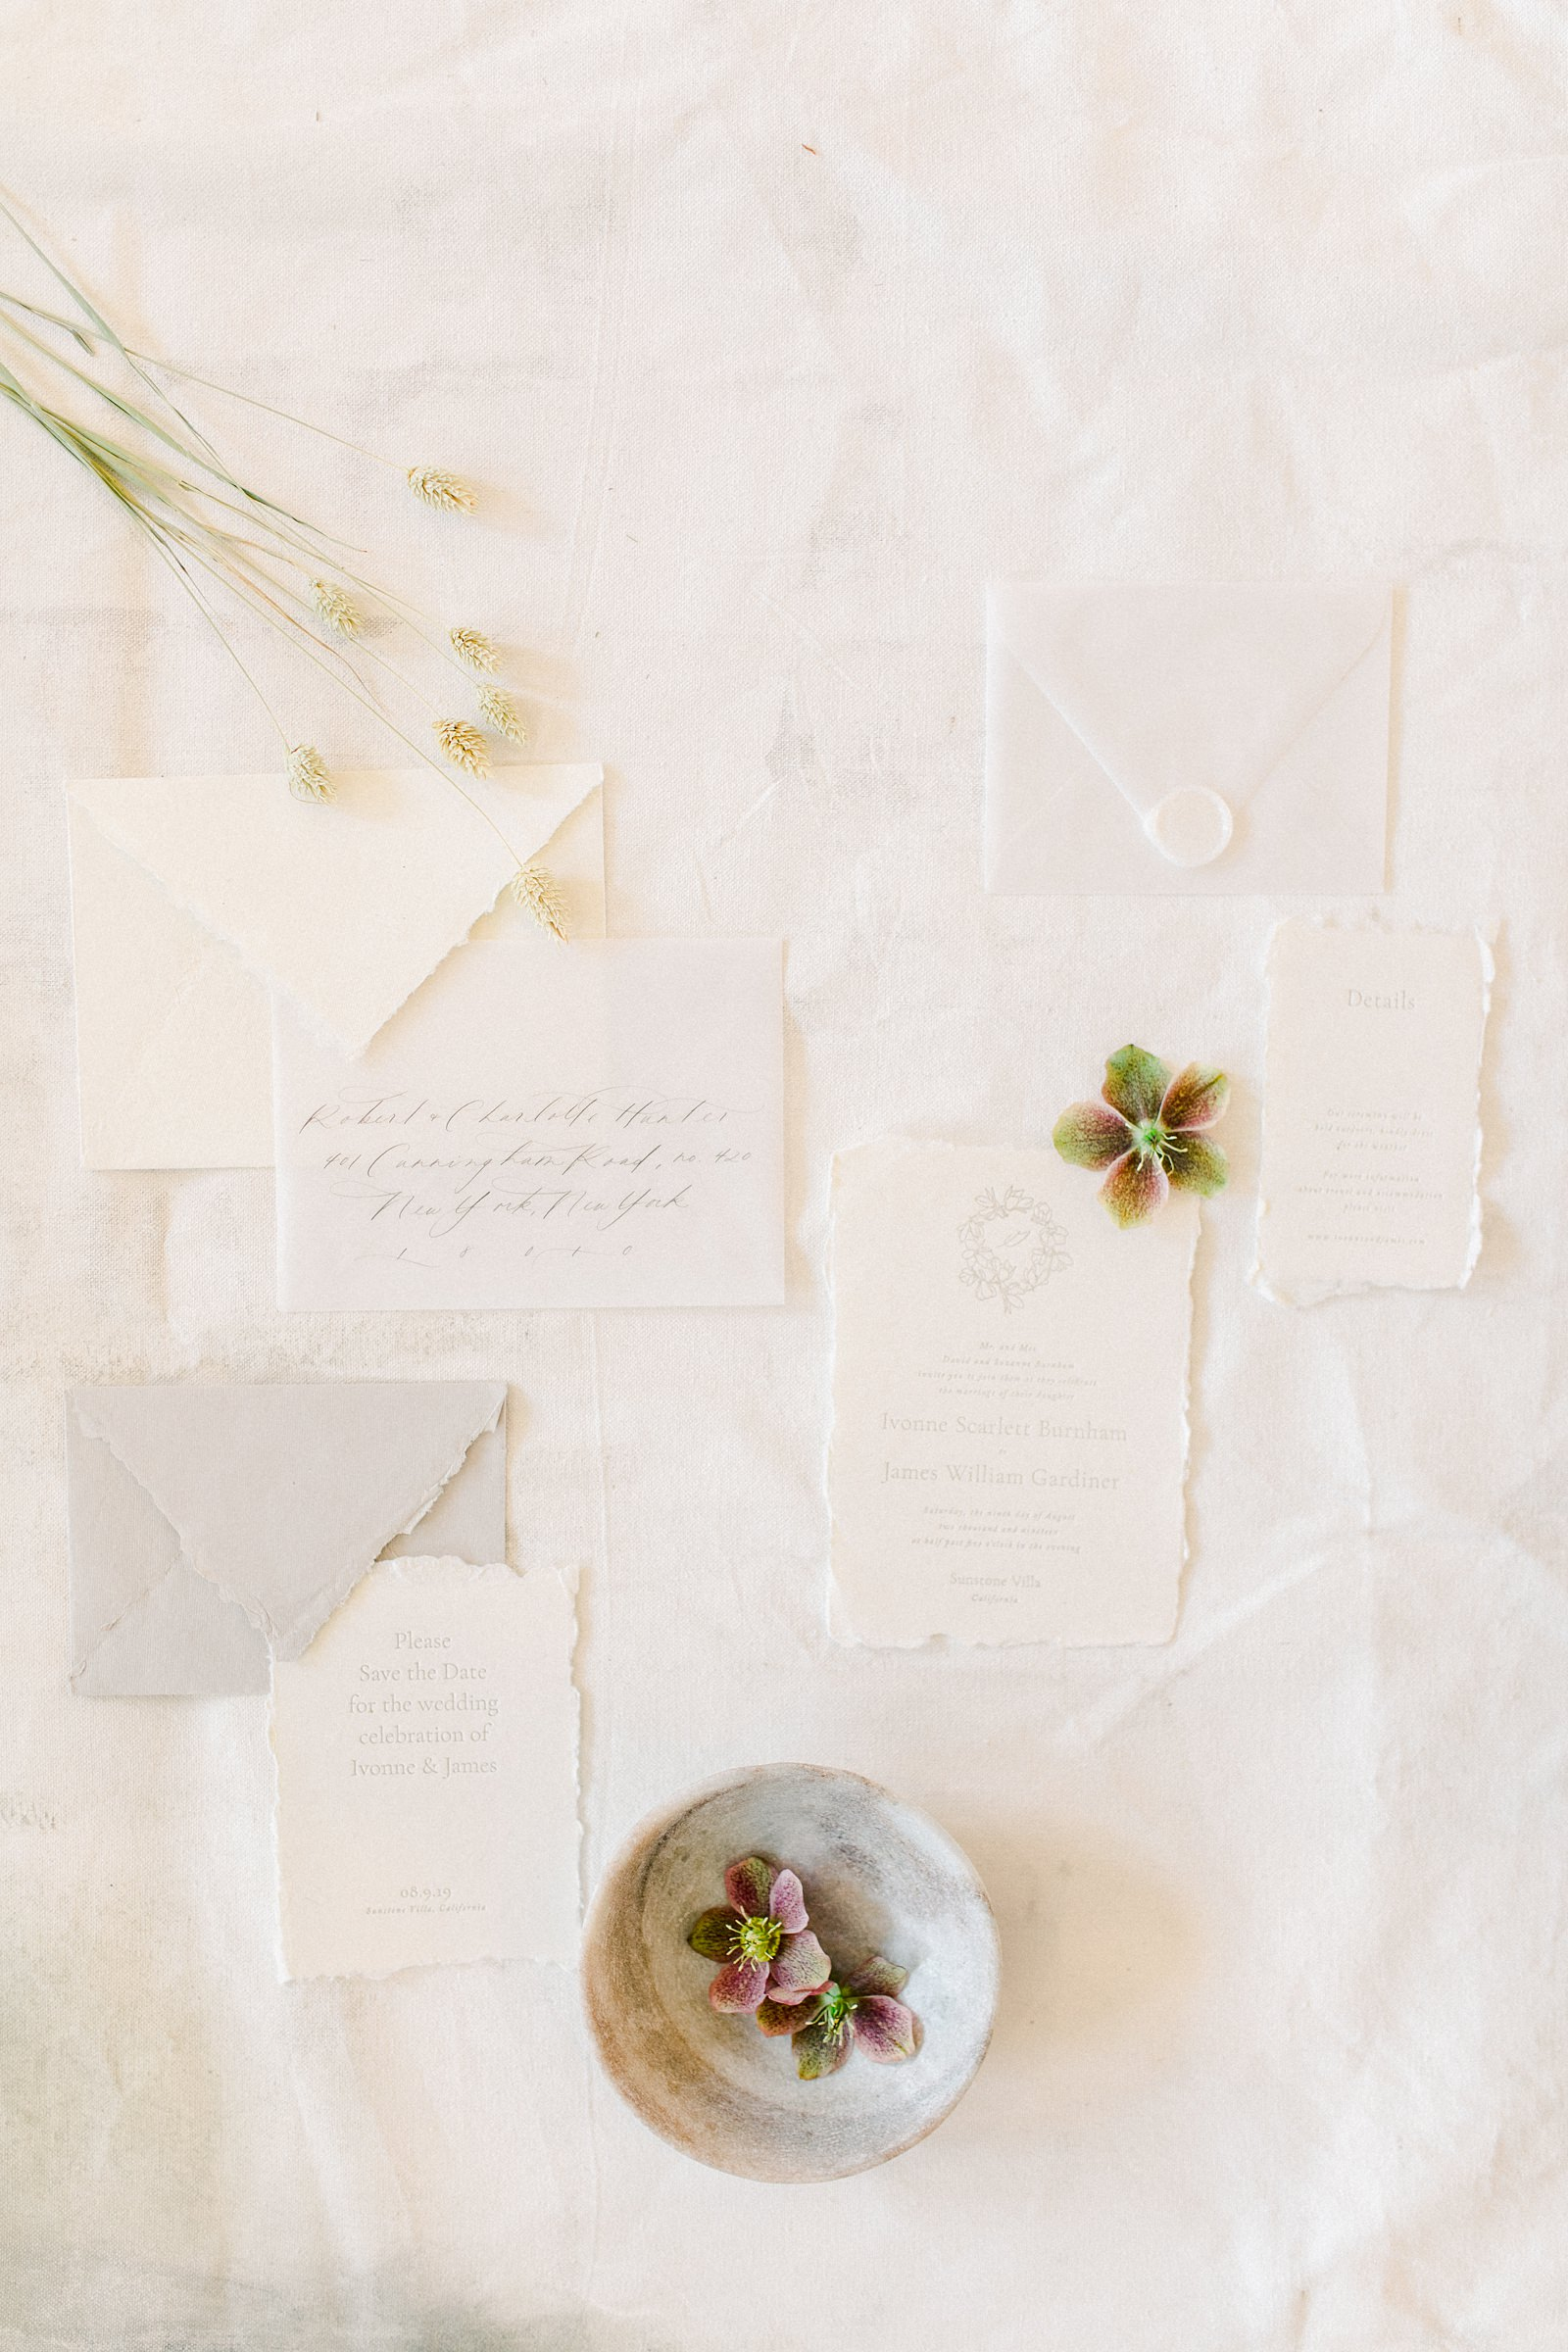 Heber Valley Natural Organic Wedding Inspiration at River Bottoms Ranch, Utah wedding film photography, white wedding invitations with raw edge calligraphy fine art